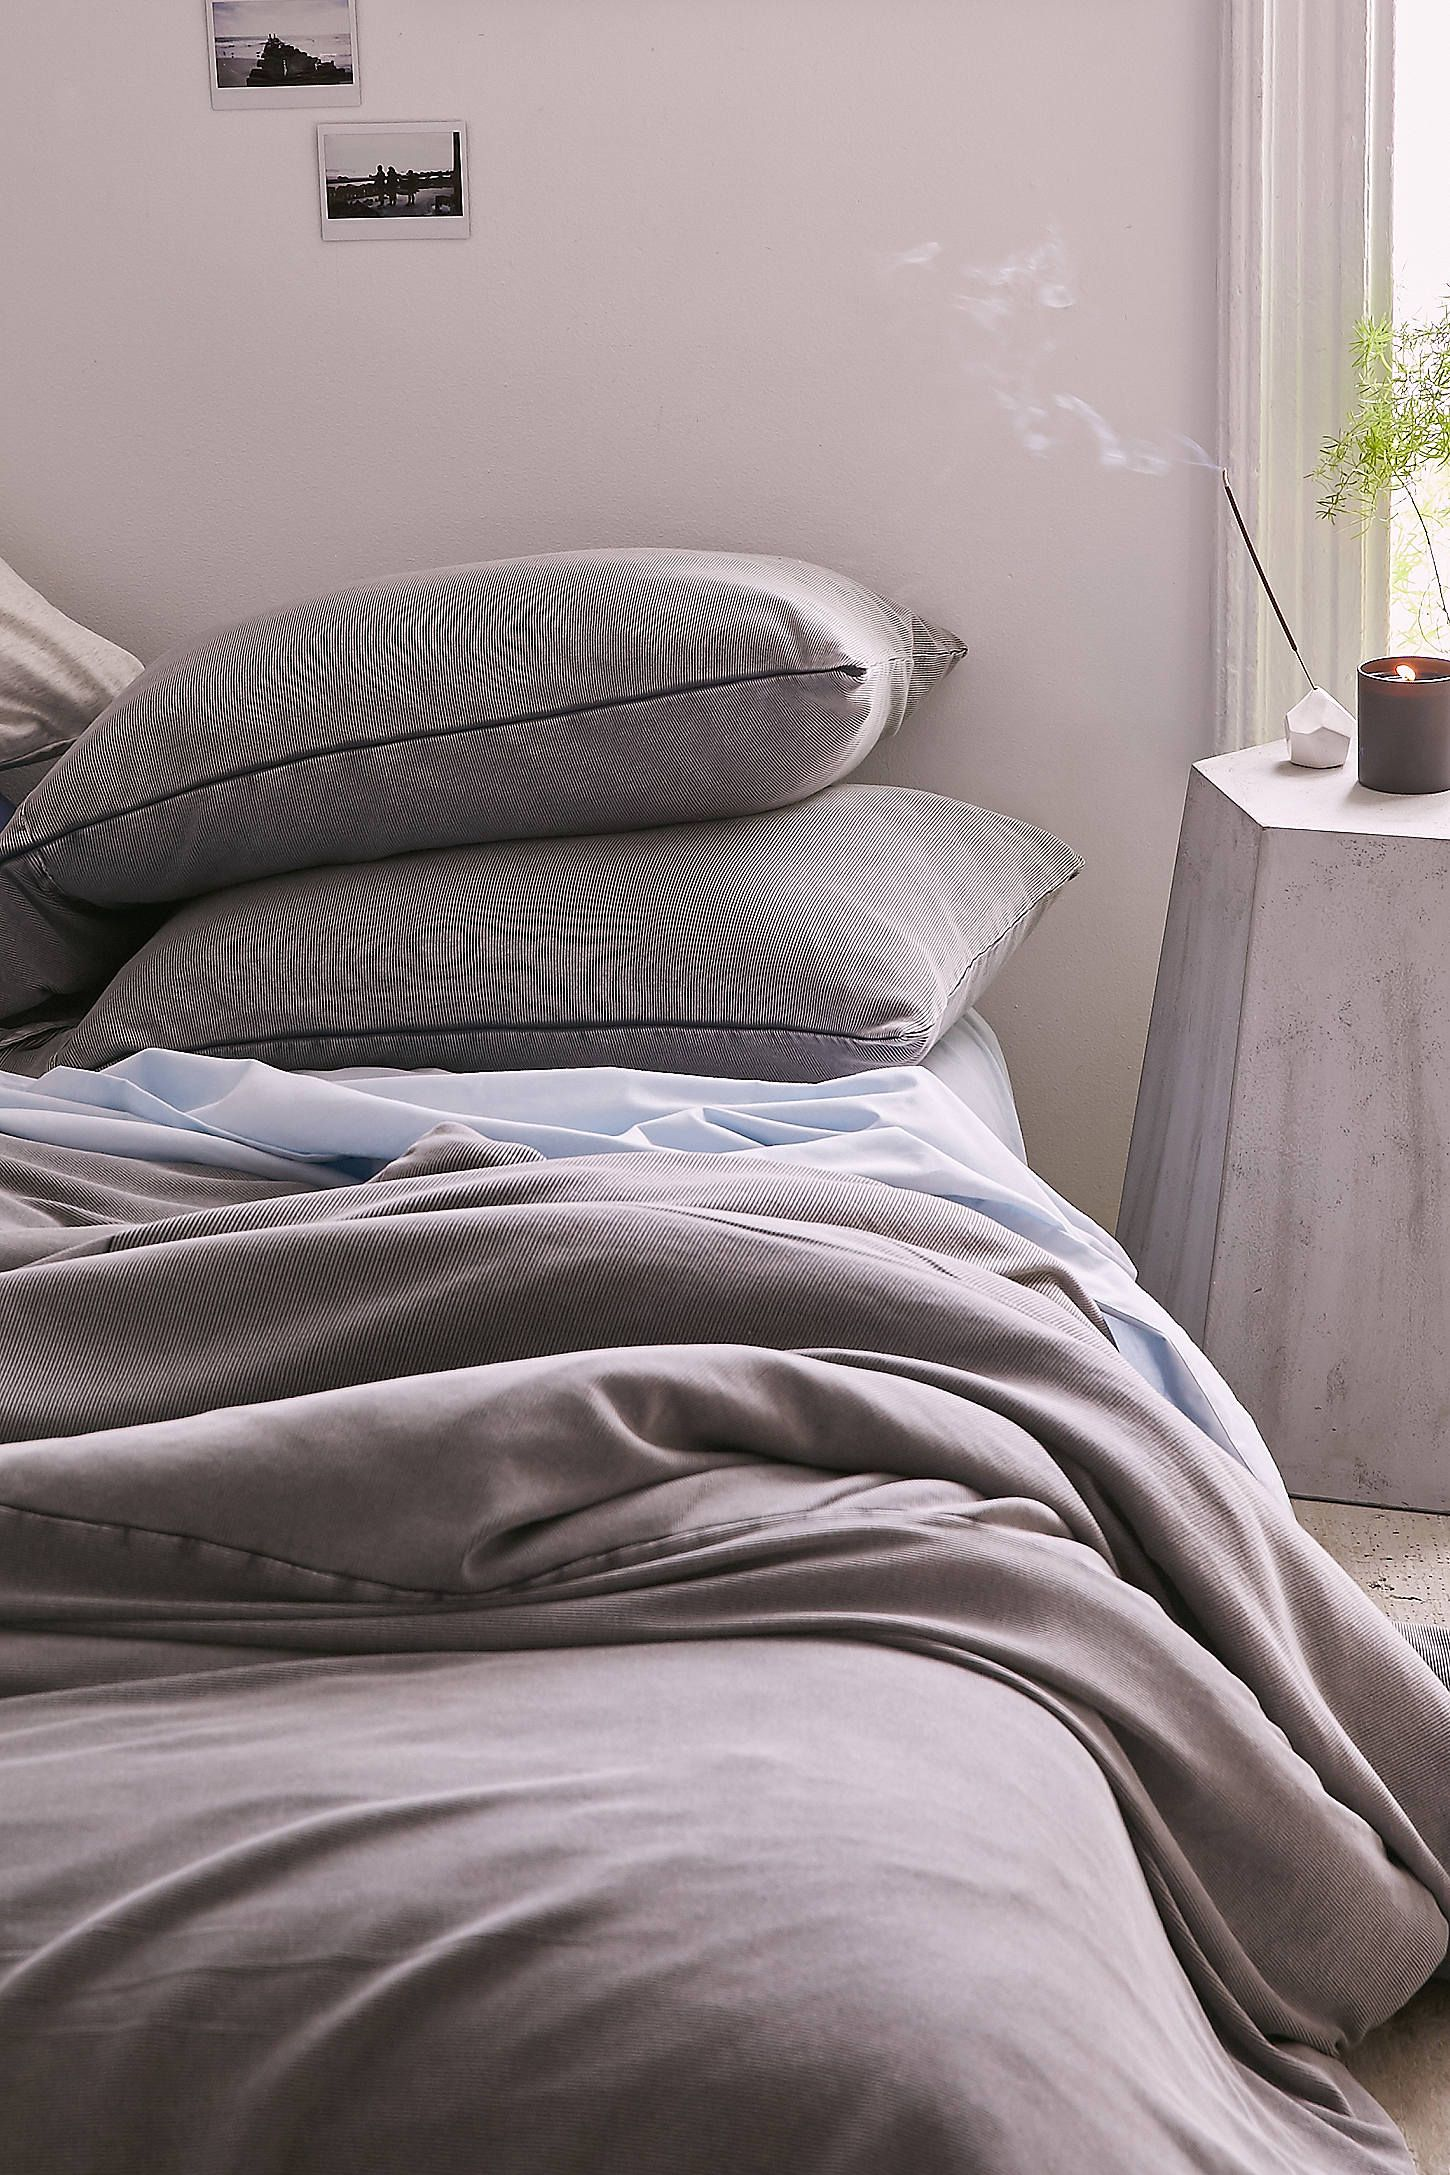 Shop Faded Ribbed Jersey Comforter at Urban Outfitters today. We carry all the latest styles, colors and brands for you to choose from right here.